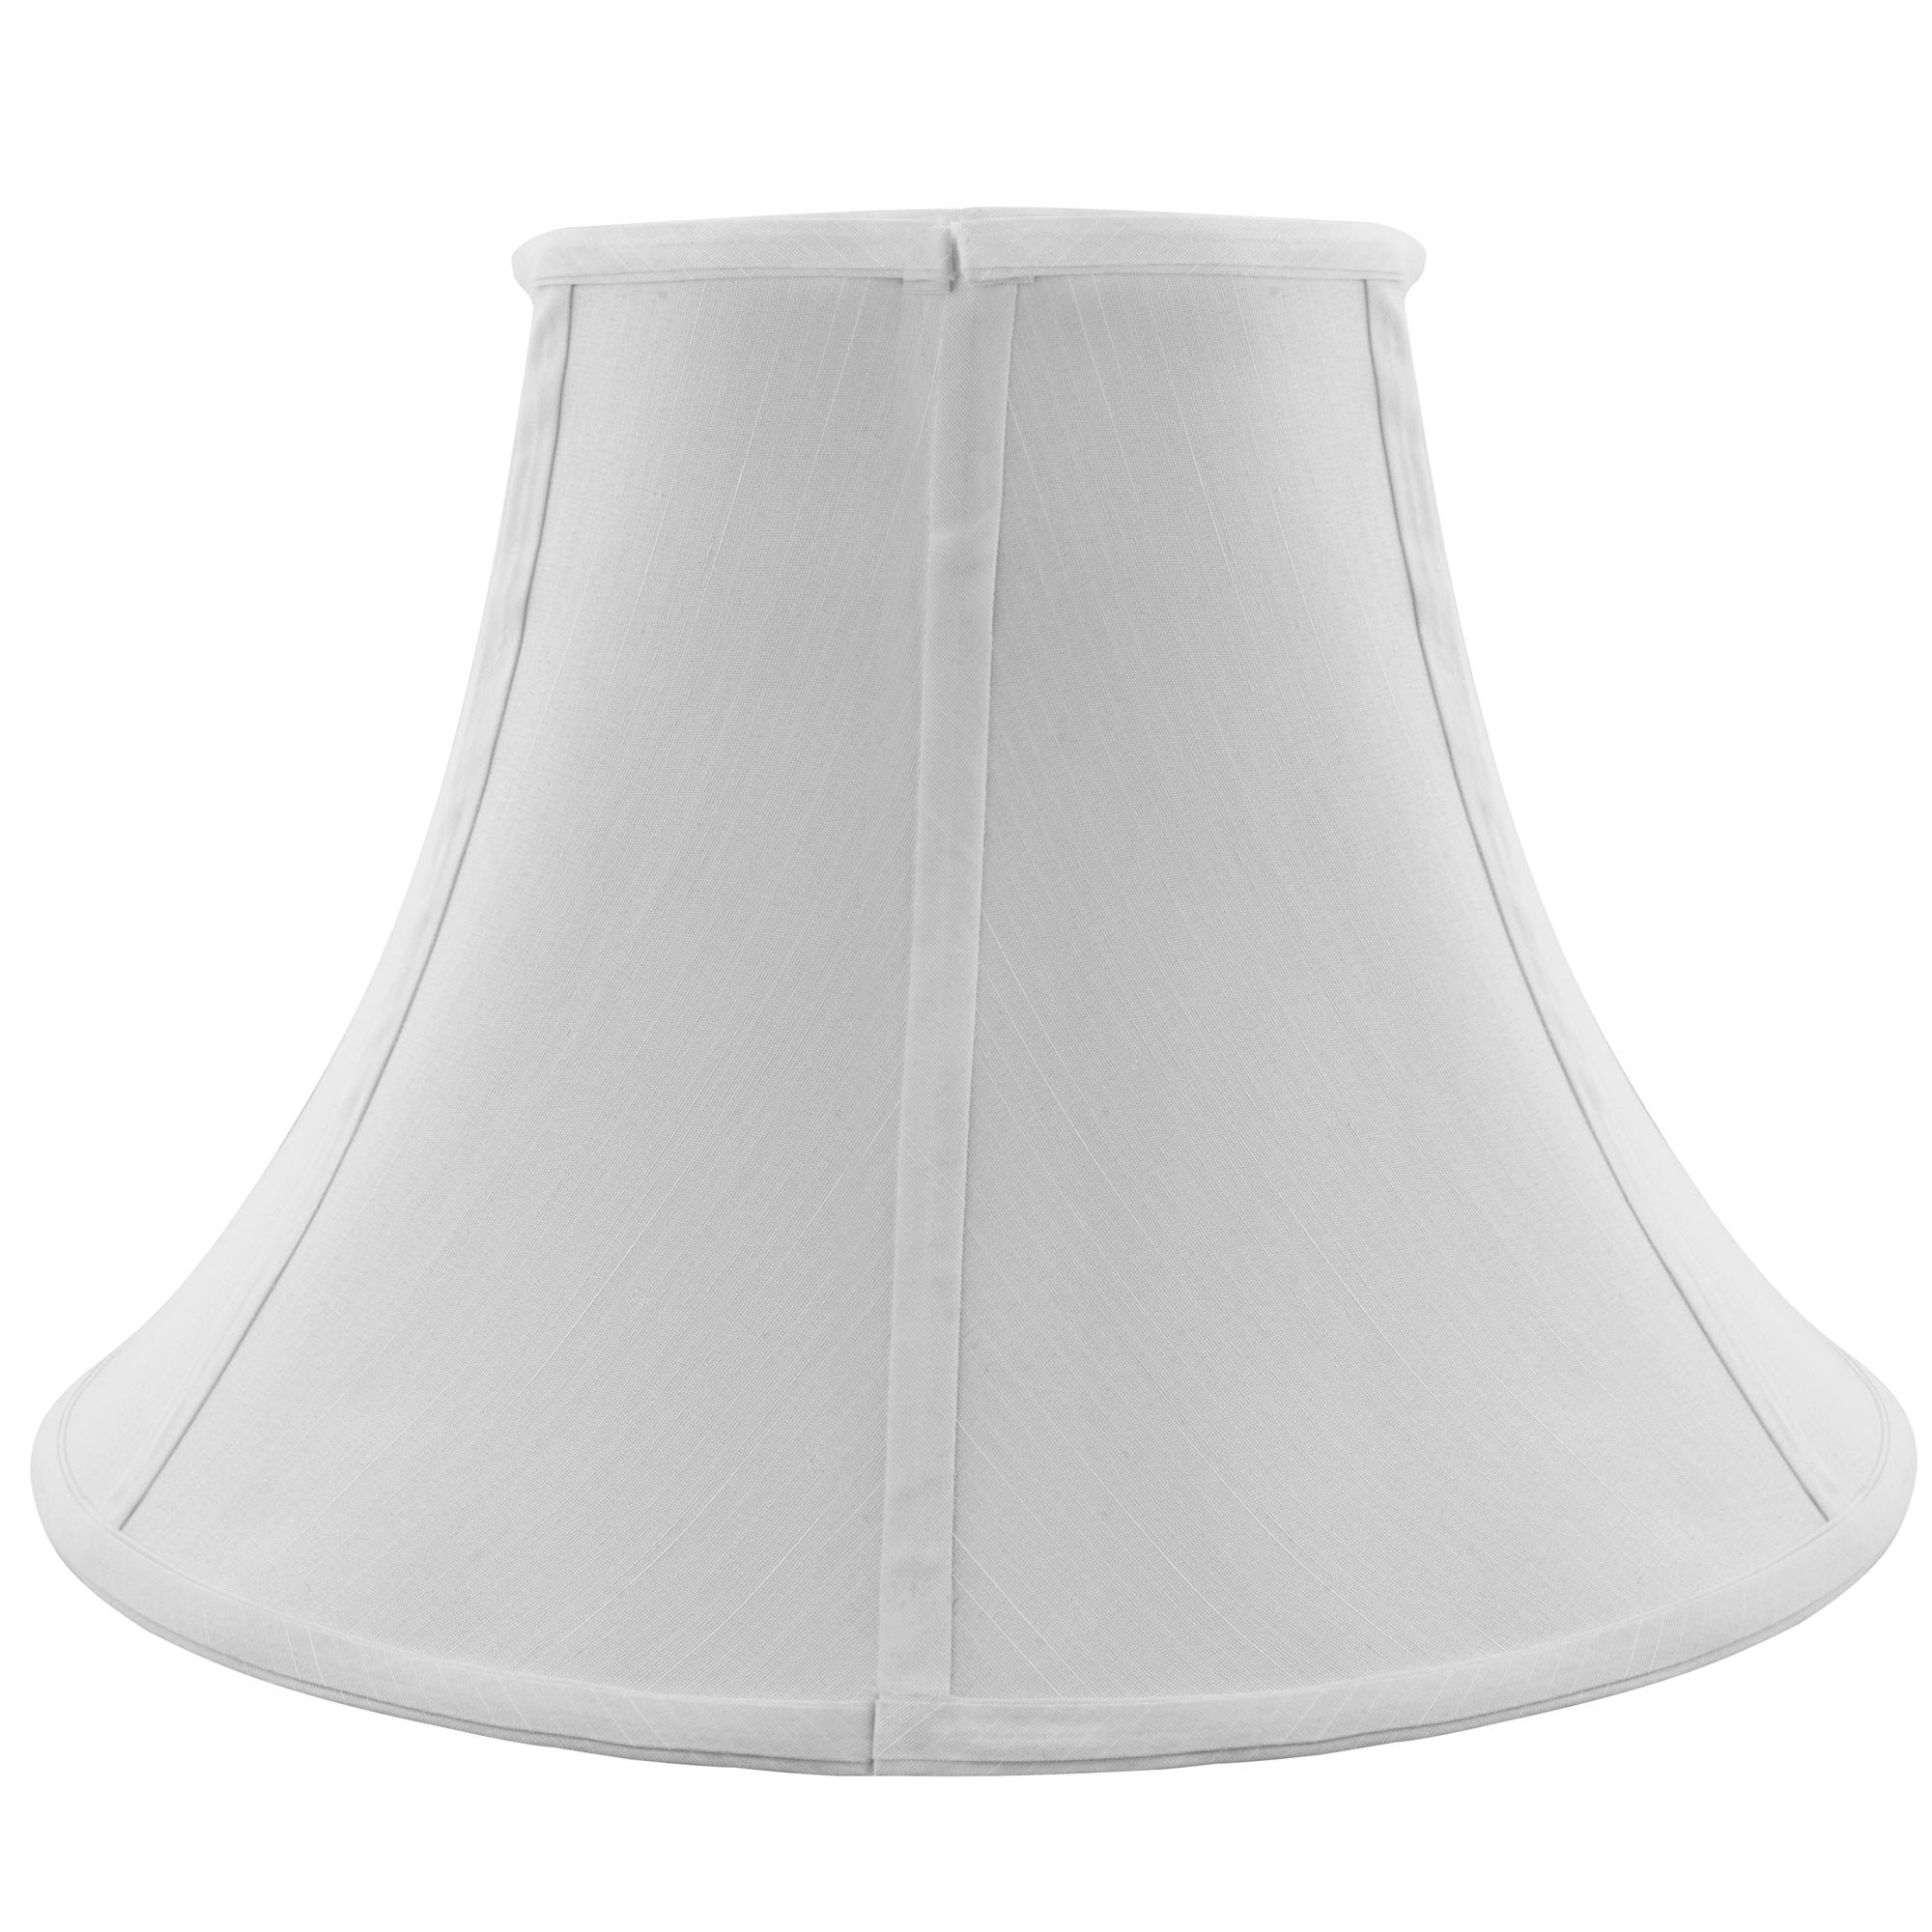 Bell Lamp Shade, Spider Lampshade with Fabric Lining and Zinc Coating for Bedroom, 10'' x 18'' x 11'' (White)